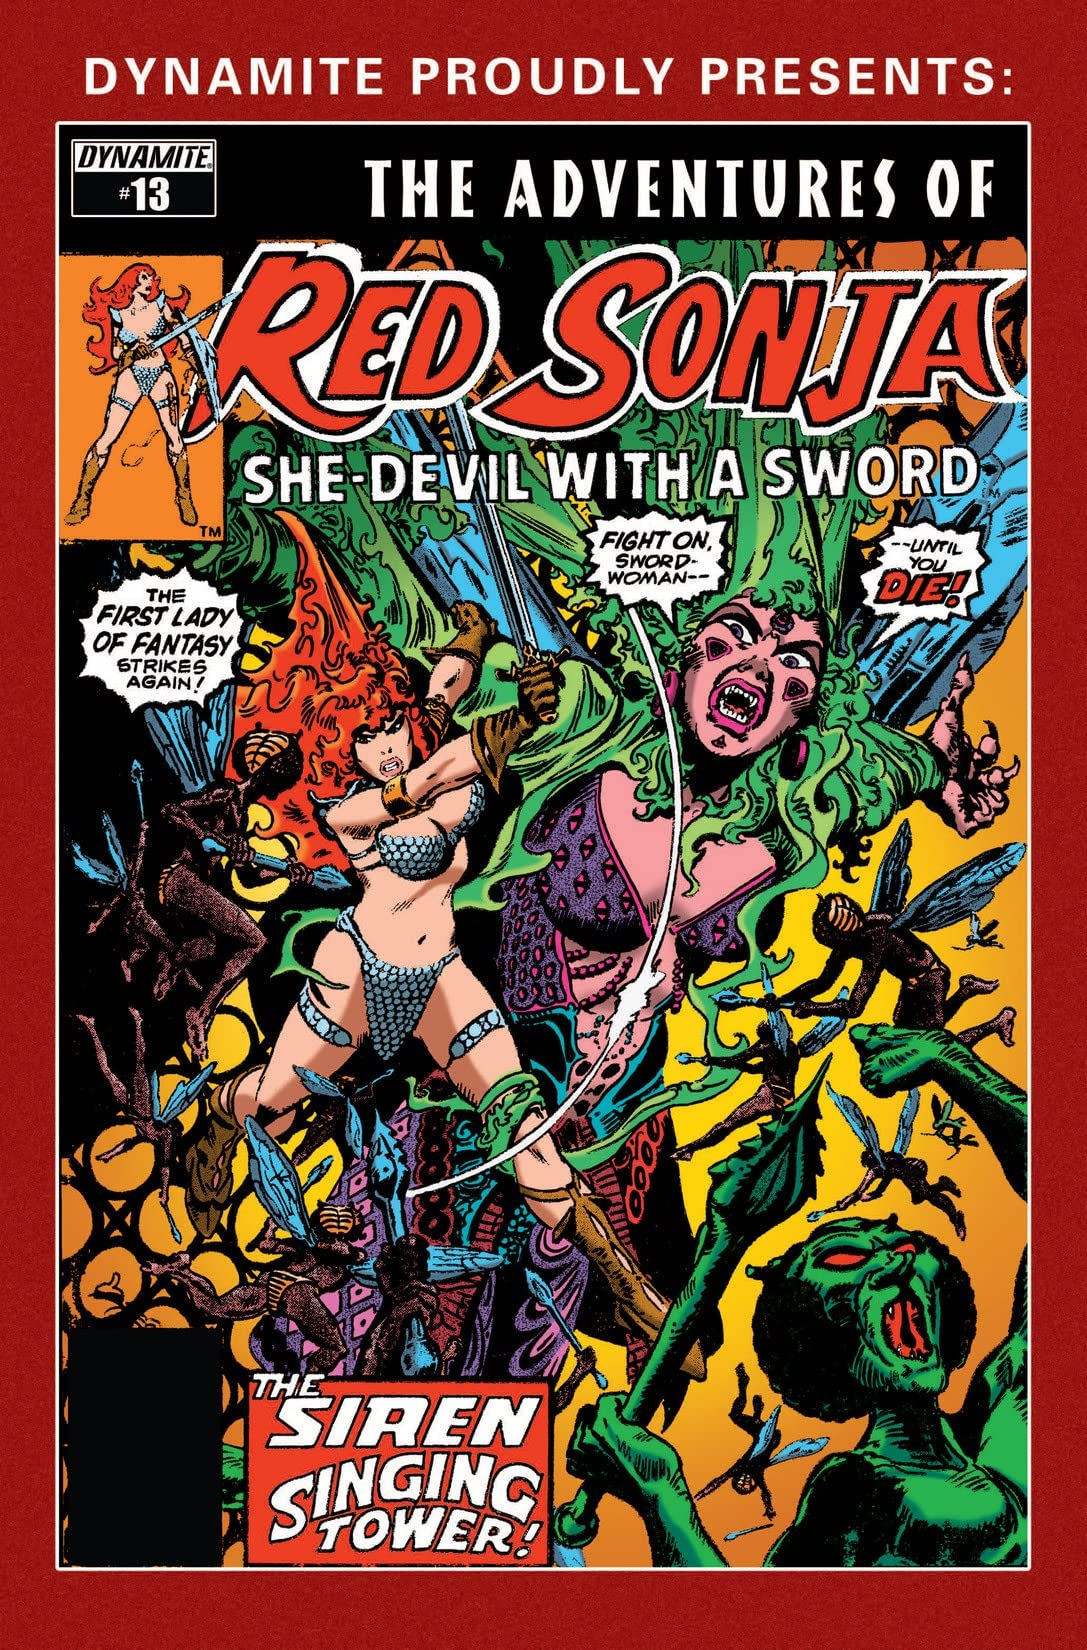 The Adventures of Red Sonja #13